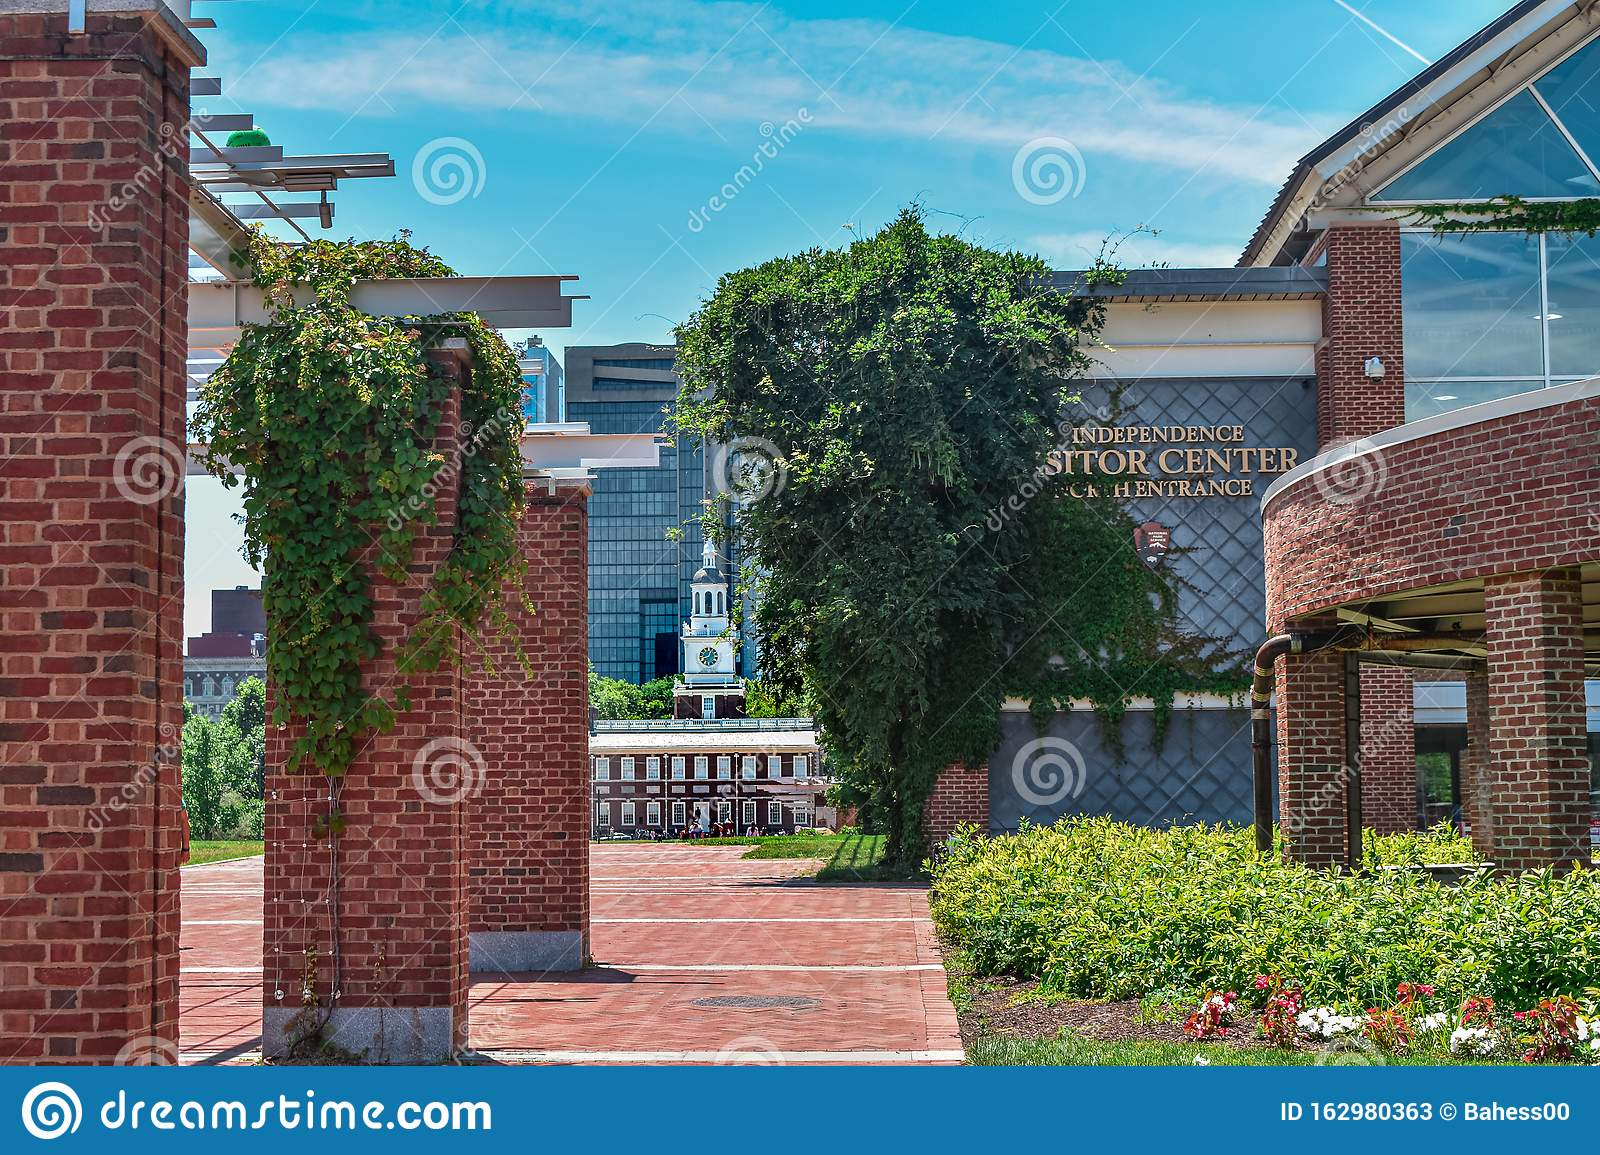 Ivy draped over bricks of Independence Visitor Center Philadelphia, Pennsylvania with Independence Hall in the background